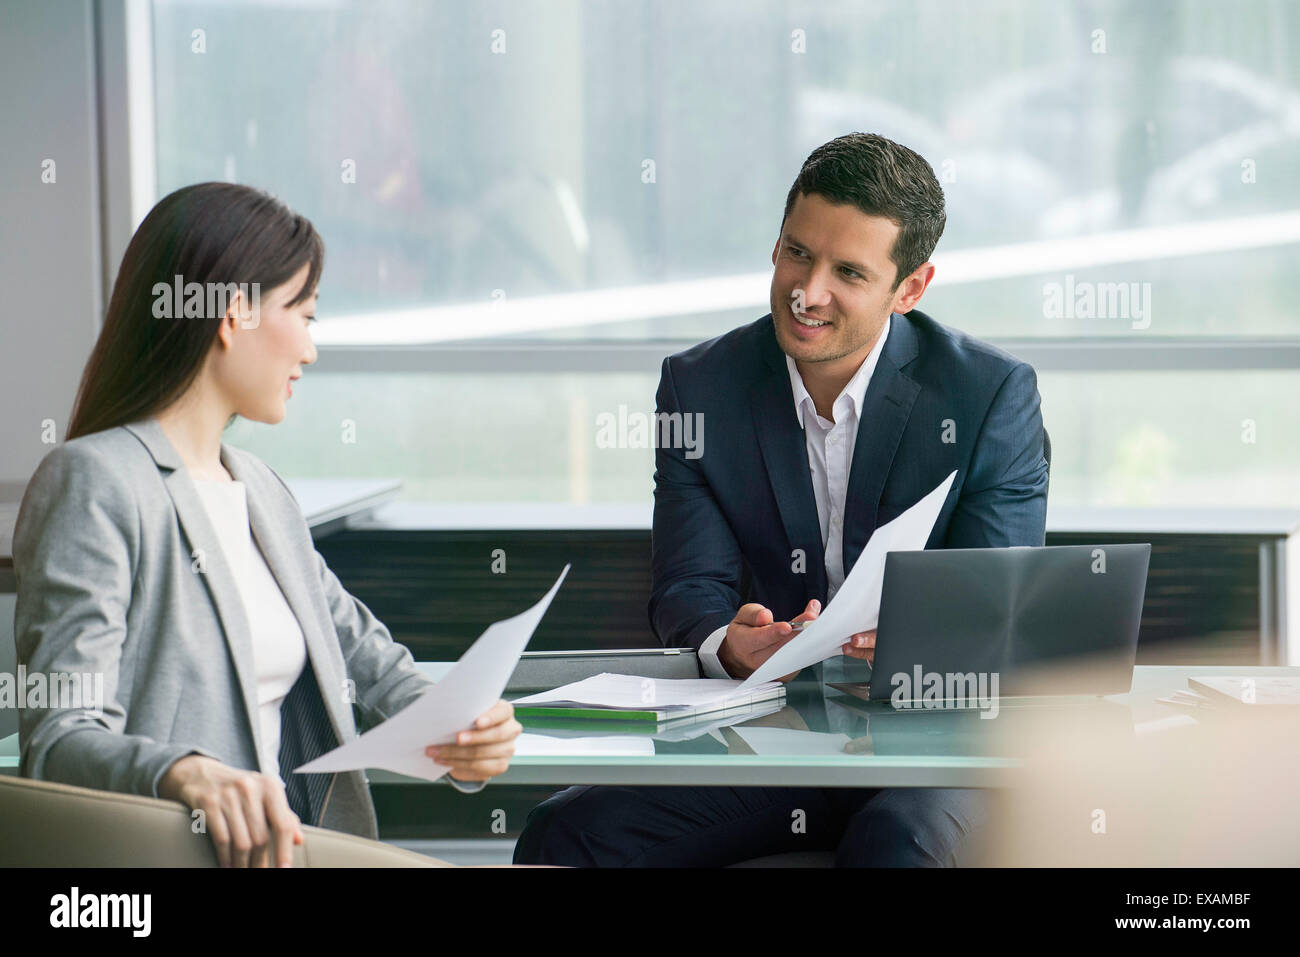 Business associates reviewing document Stock Photo